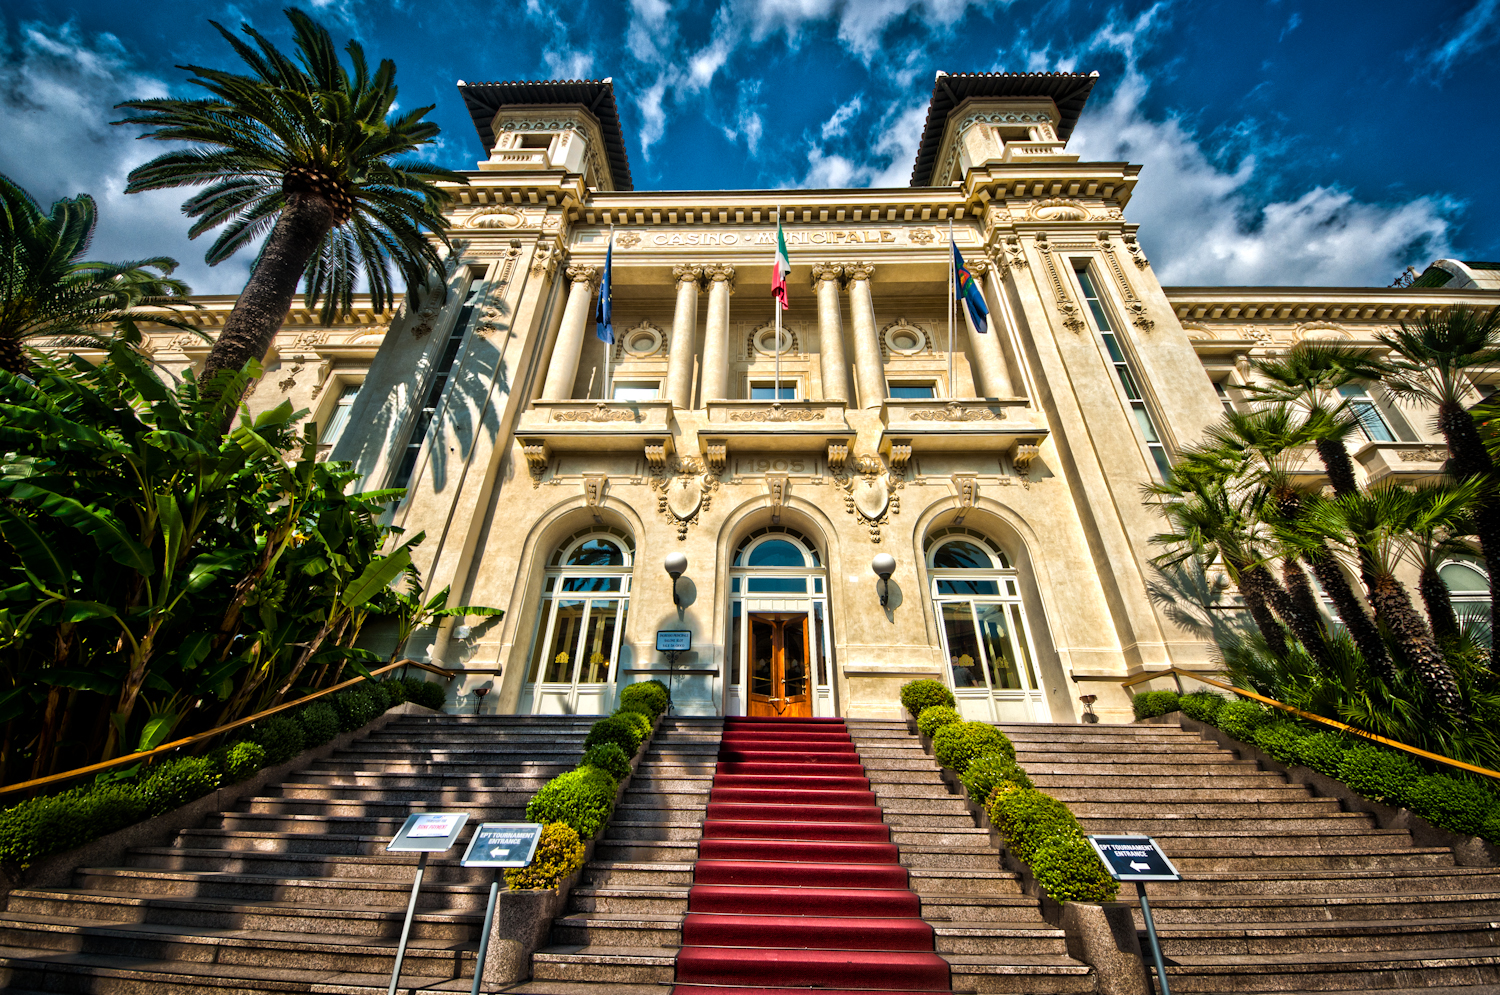 Casino di sanremo poker on line saganing casino